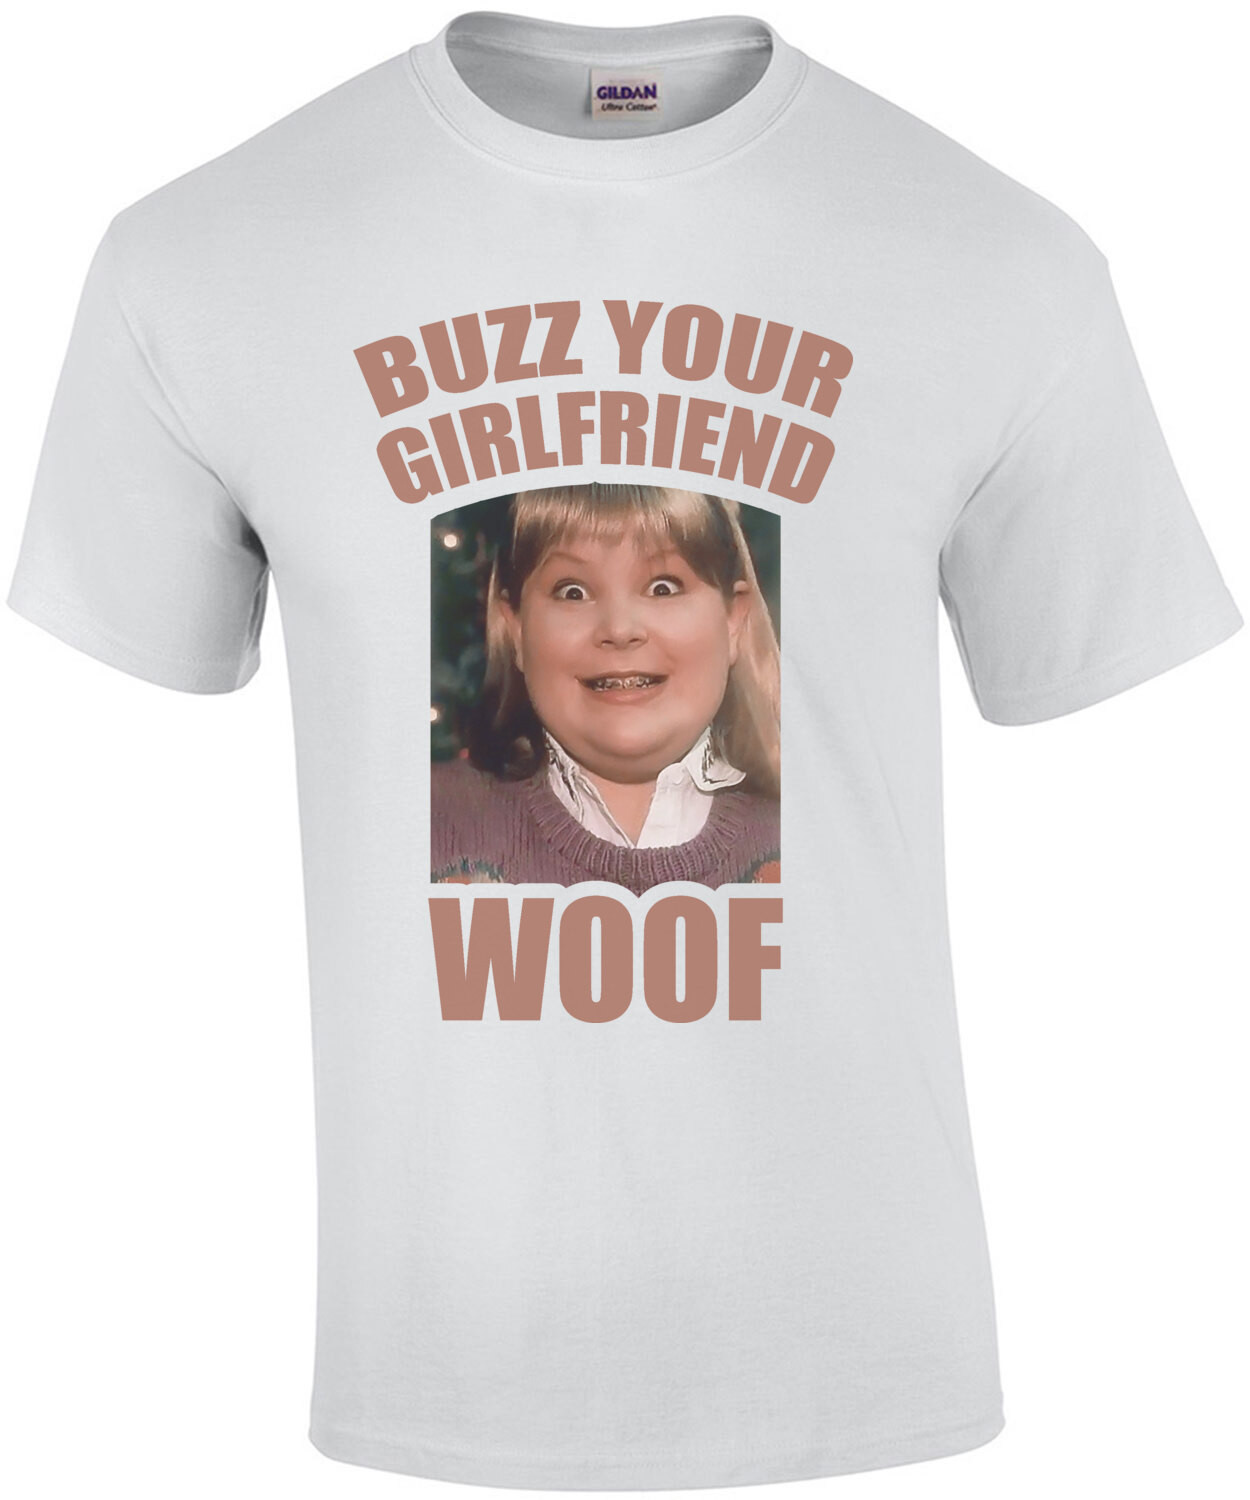 Buzz - your girlfriend - Woof - Home Alone - Funny Christmas T-Shirt